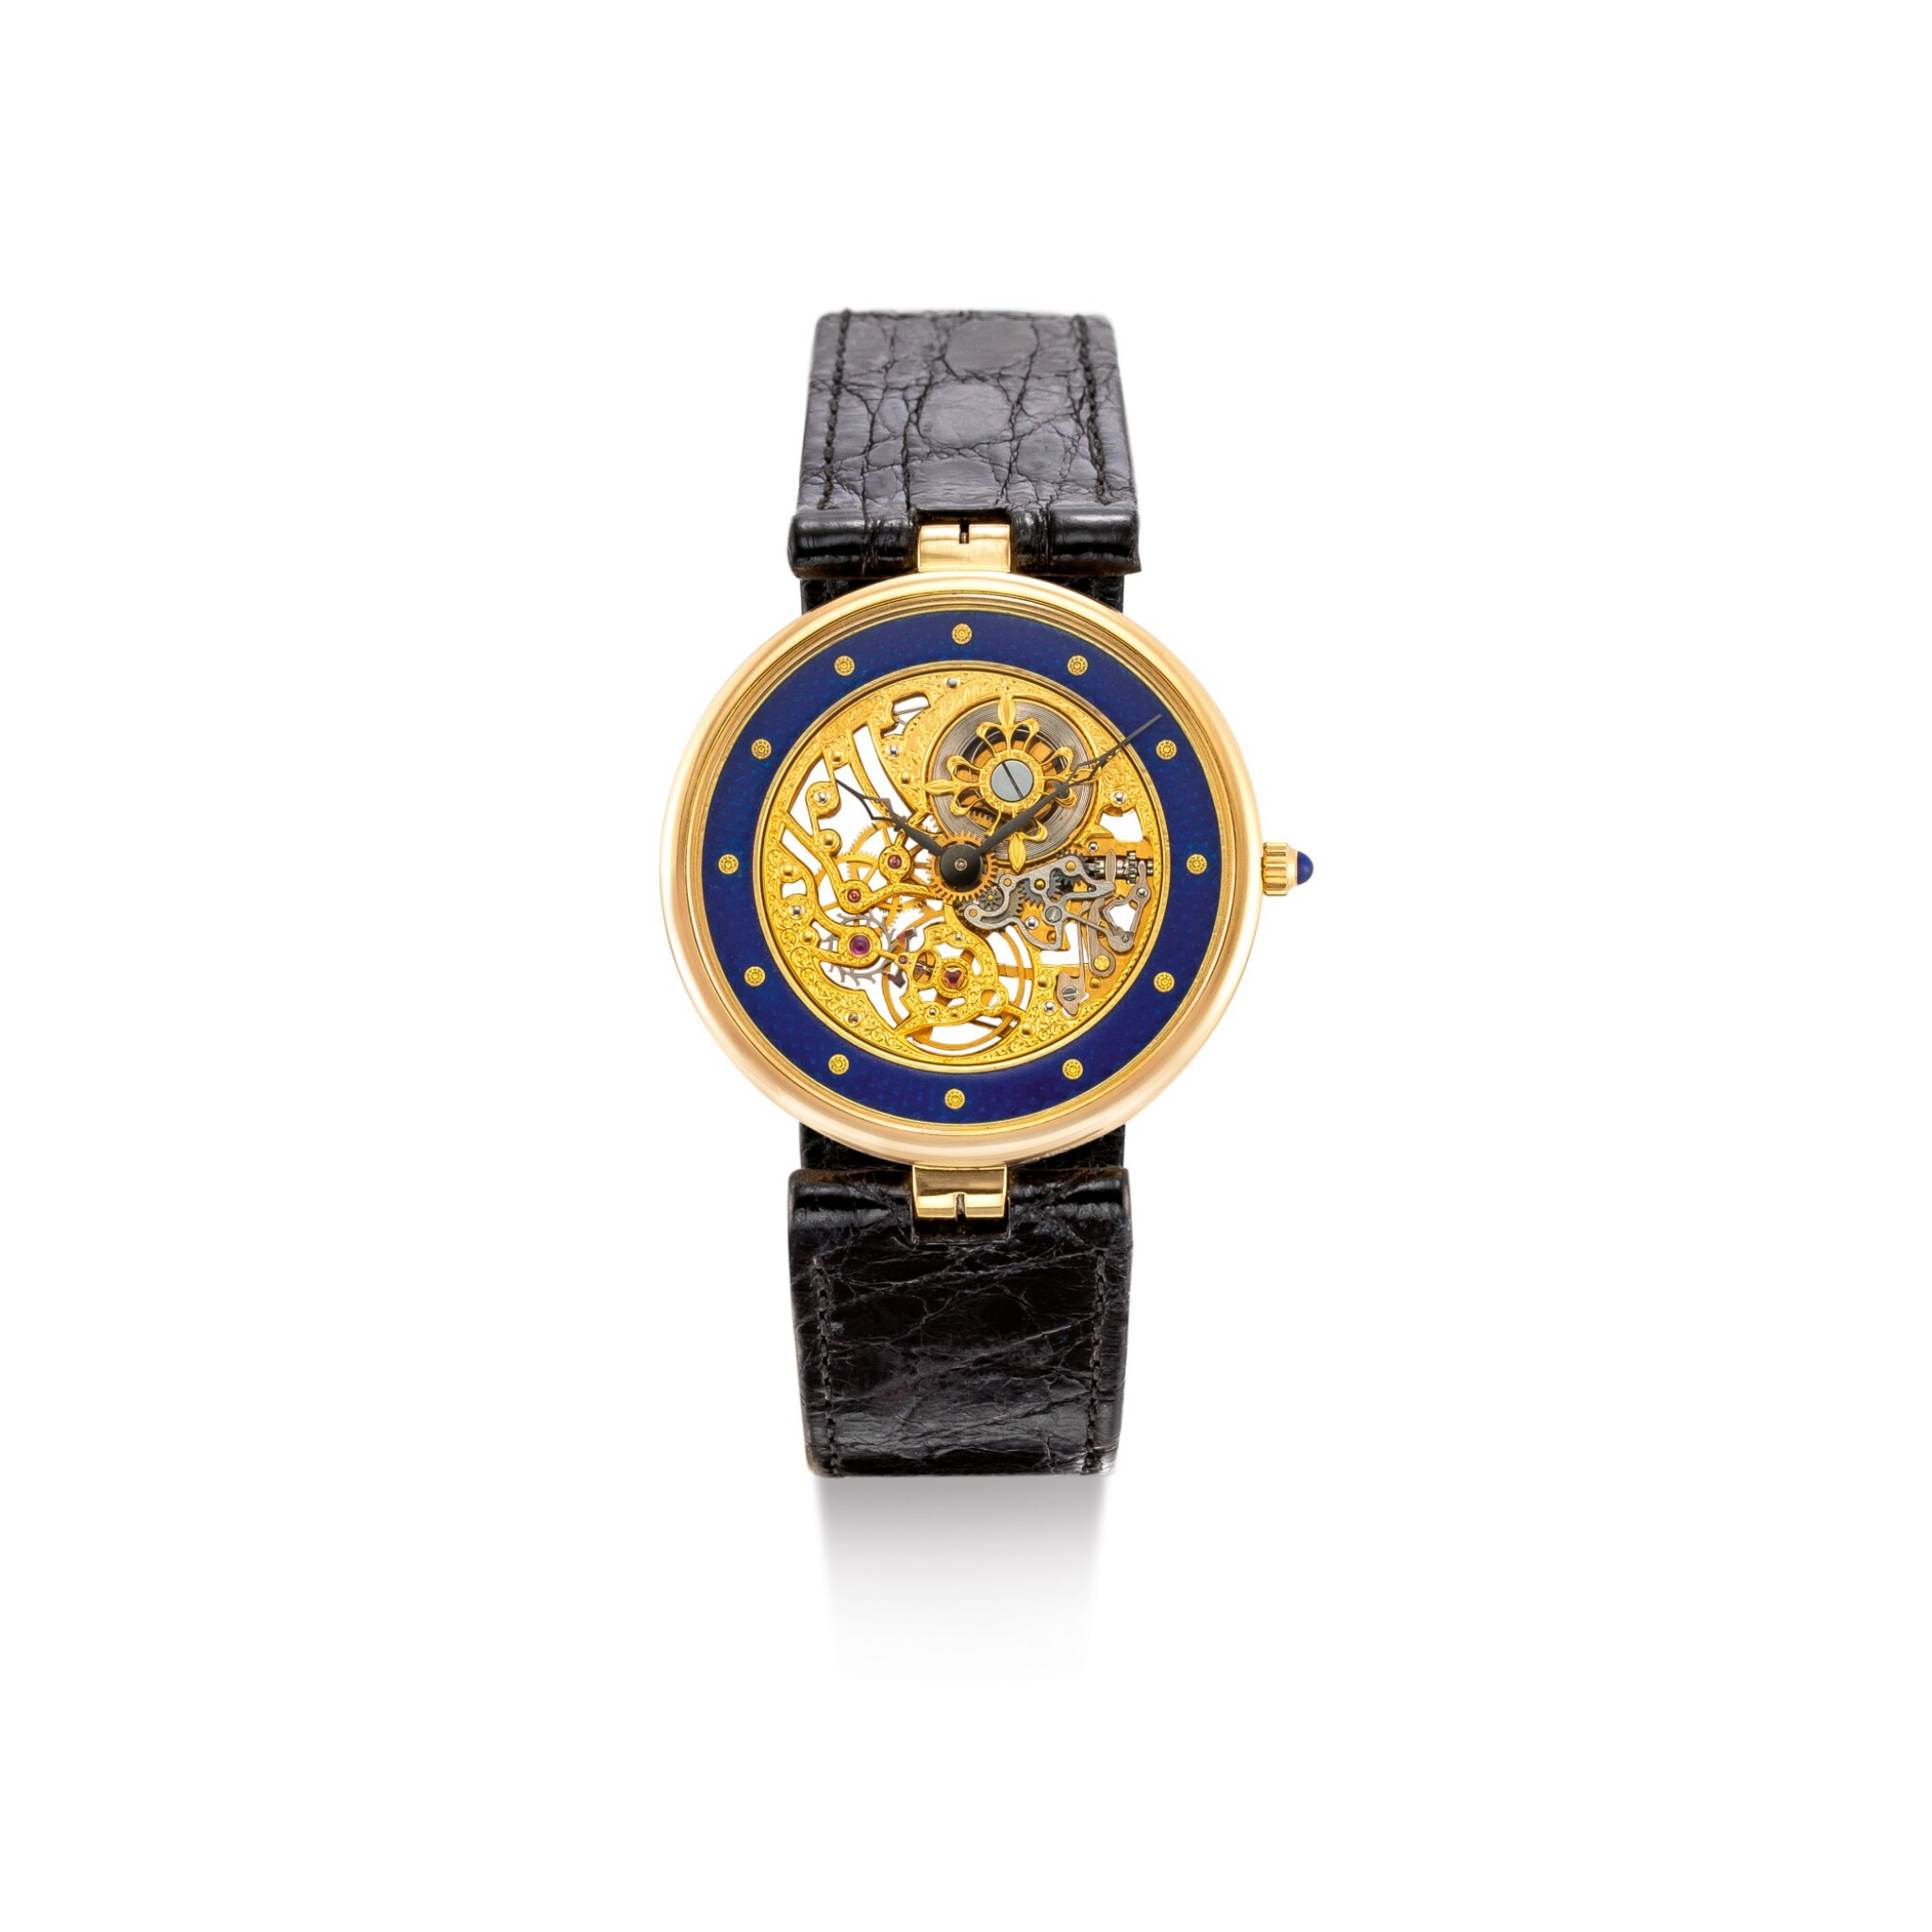 View full screen - View 1 of Lot 2101. PATEK PHILIPPE | REFERENCE 3885, A YELLOW GOLD AND ENAMEL SKELETONIZED WRISTWATCH, CIRCA 1991 |  百達翡麗 |  型號3885   黃金鑲琺瑯鏤空腕錶,機芯編號1389273,錶殼編號2300762,約1991年製.